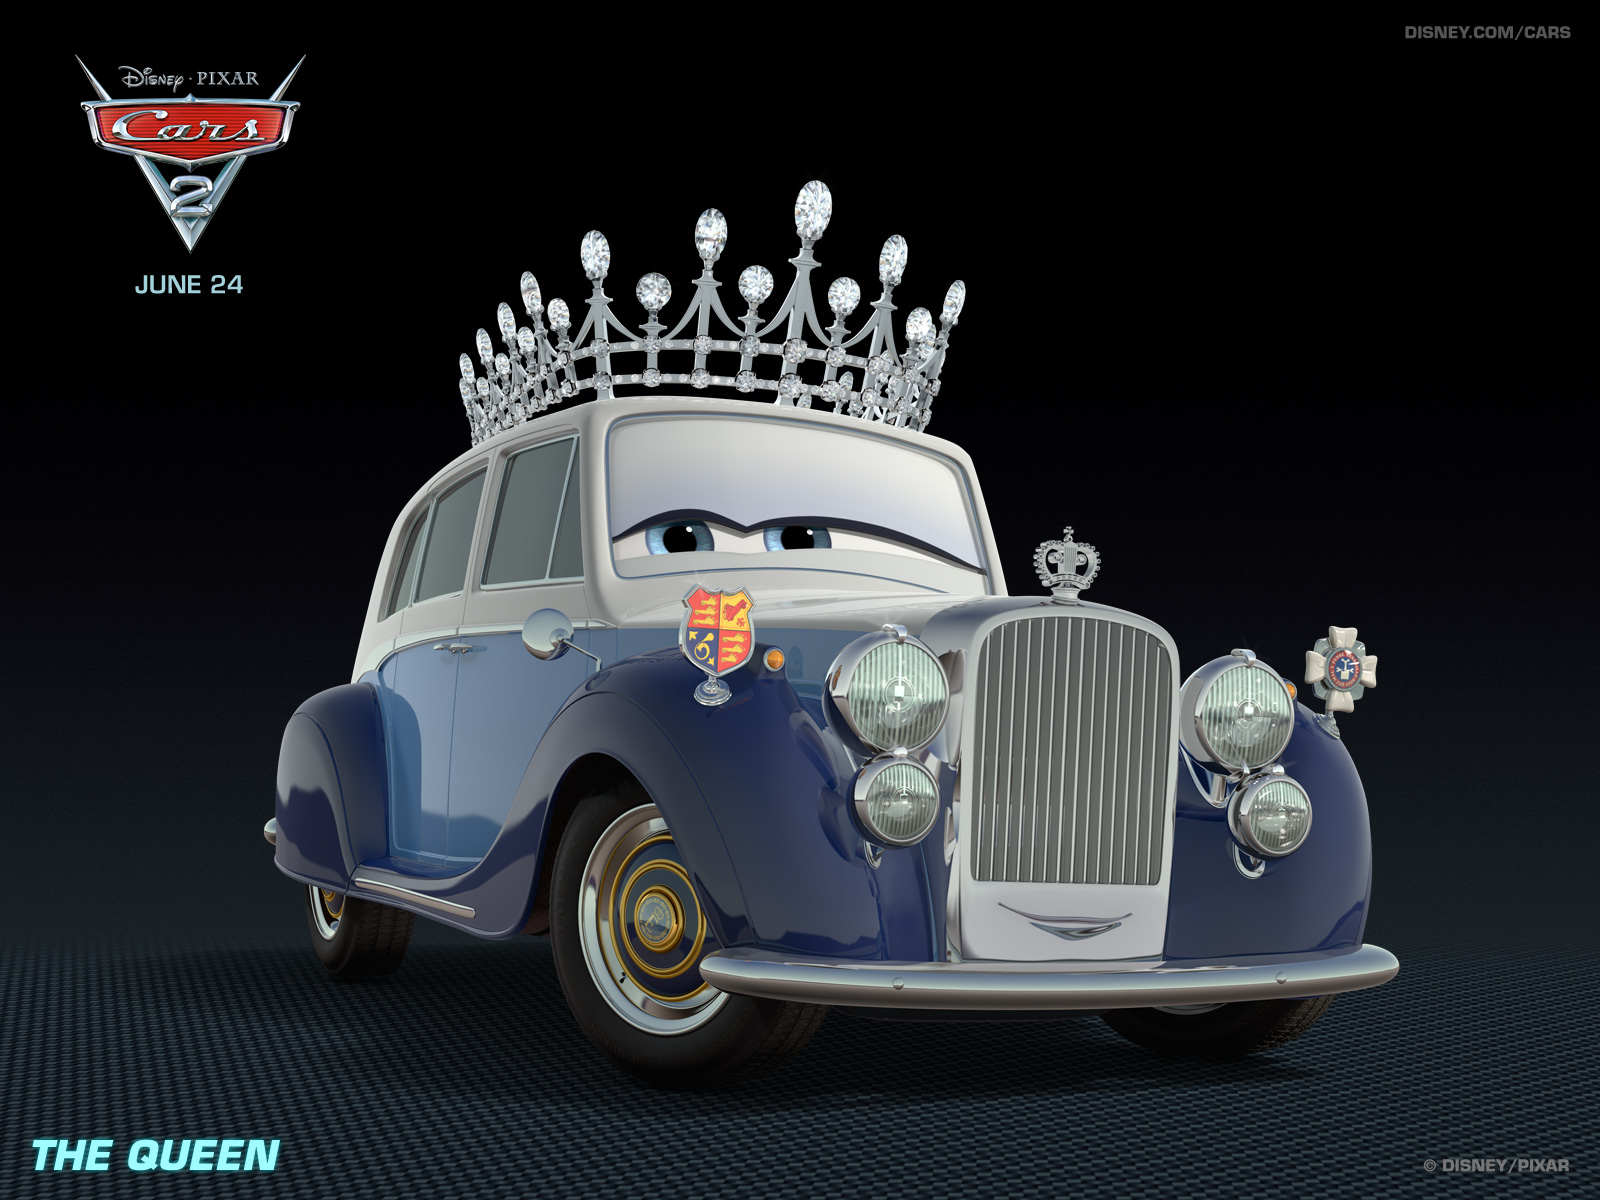 Pixar Cars 2 queen_1600x1200